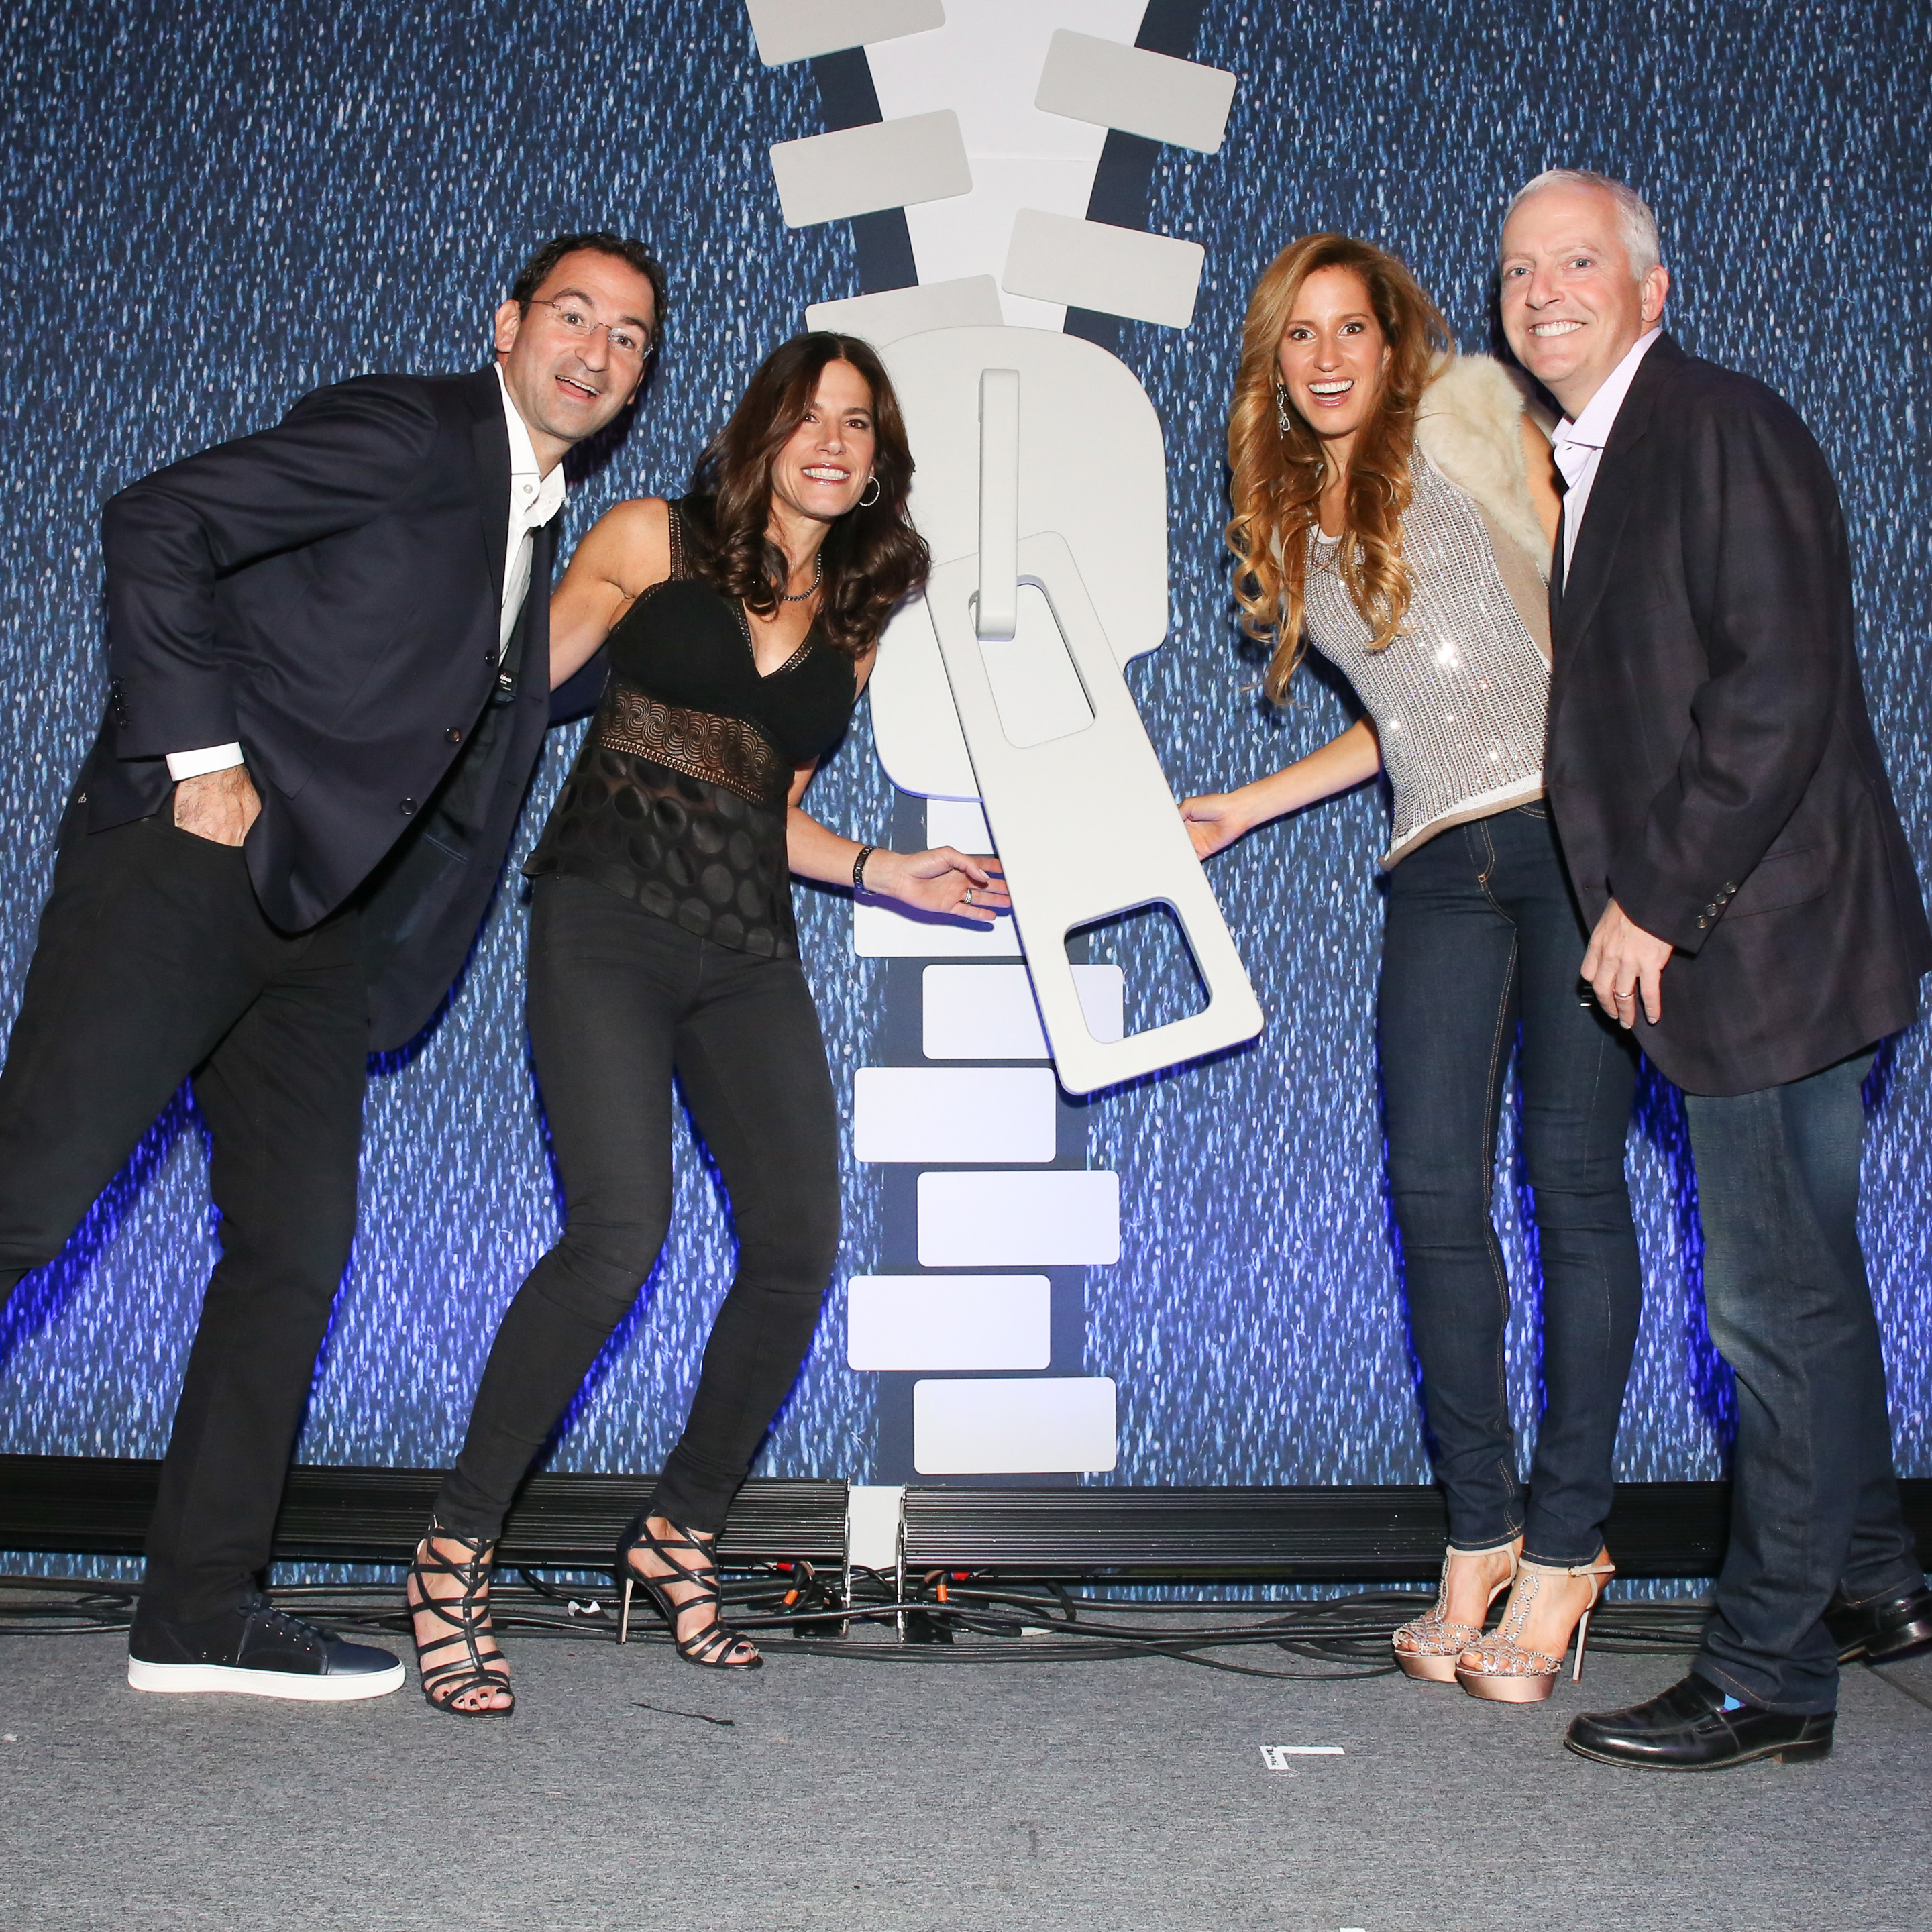 Basser Center founders and donors at the inaugural Jean Bash charity event